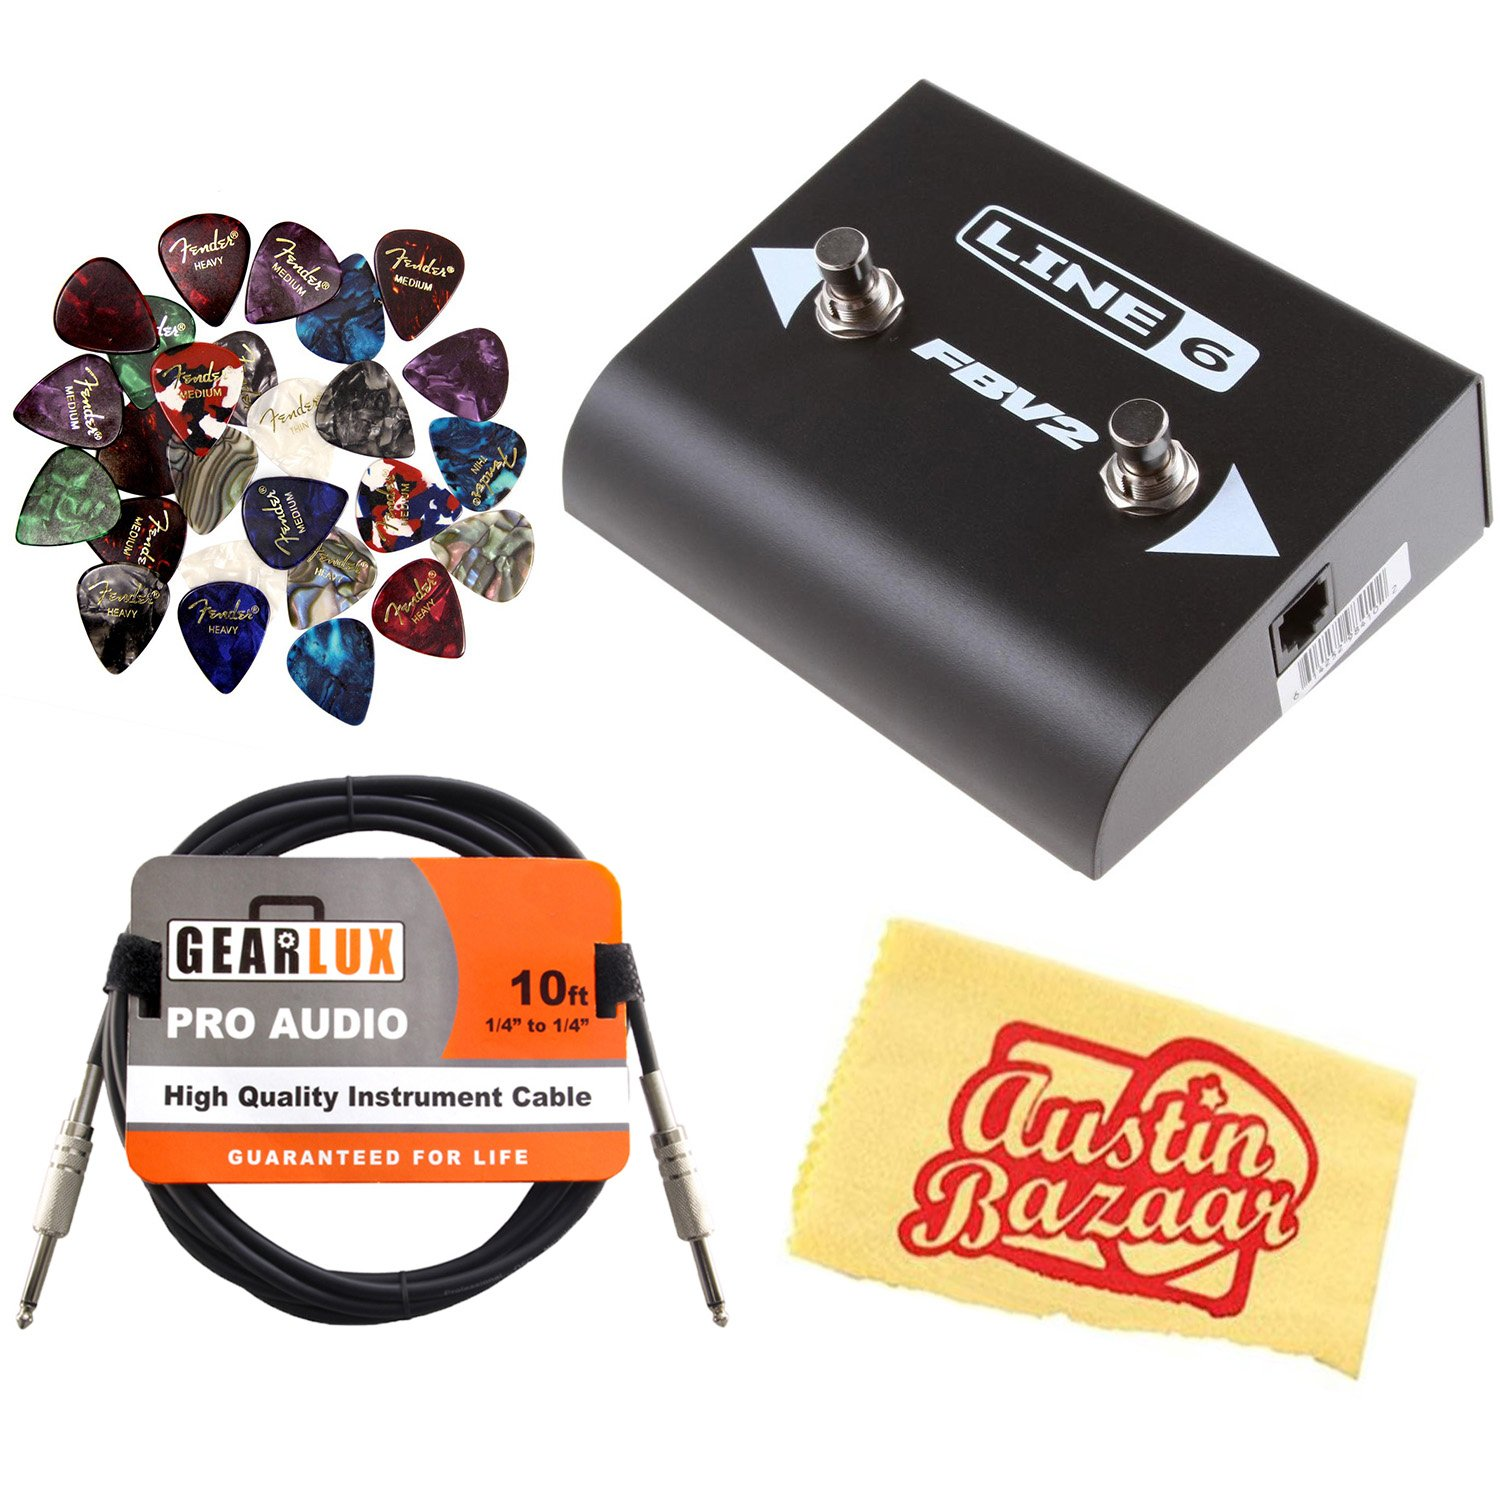 Line 6 FBV 2 2-Button Foot Switch Bundle with Instrument Cable, 24 Picks, and Austin Bazaar Polishing Cloth